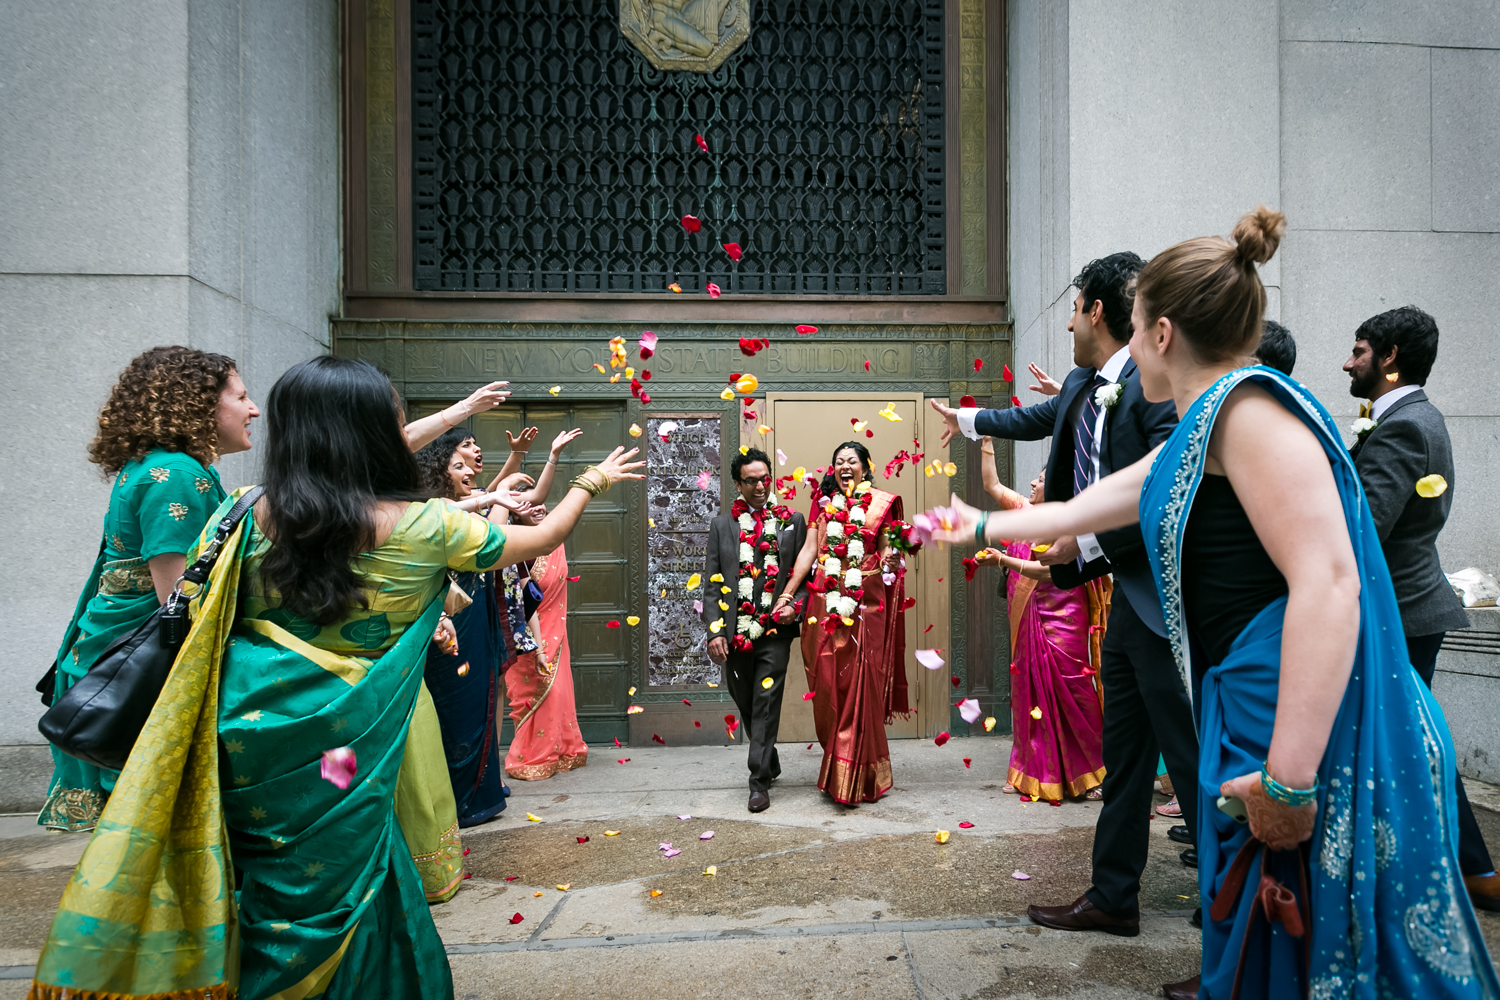 Bridal party wearing saris throwing rose petals at Indian bride and groom at a NYC City Hall Indian wedding